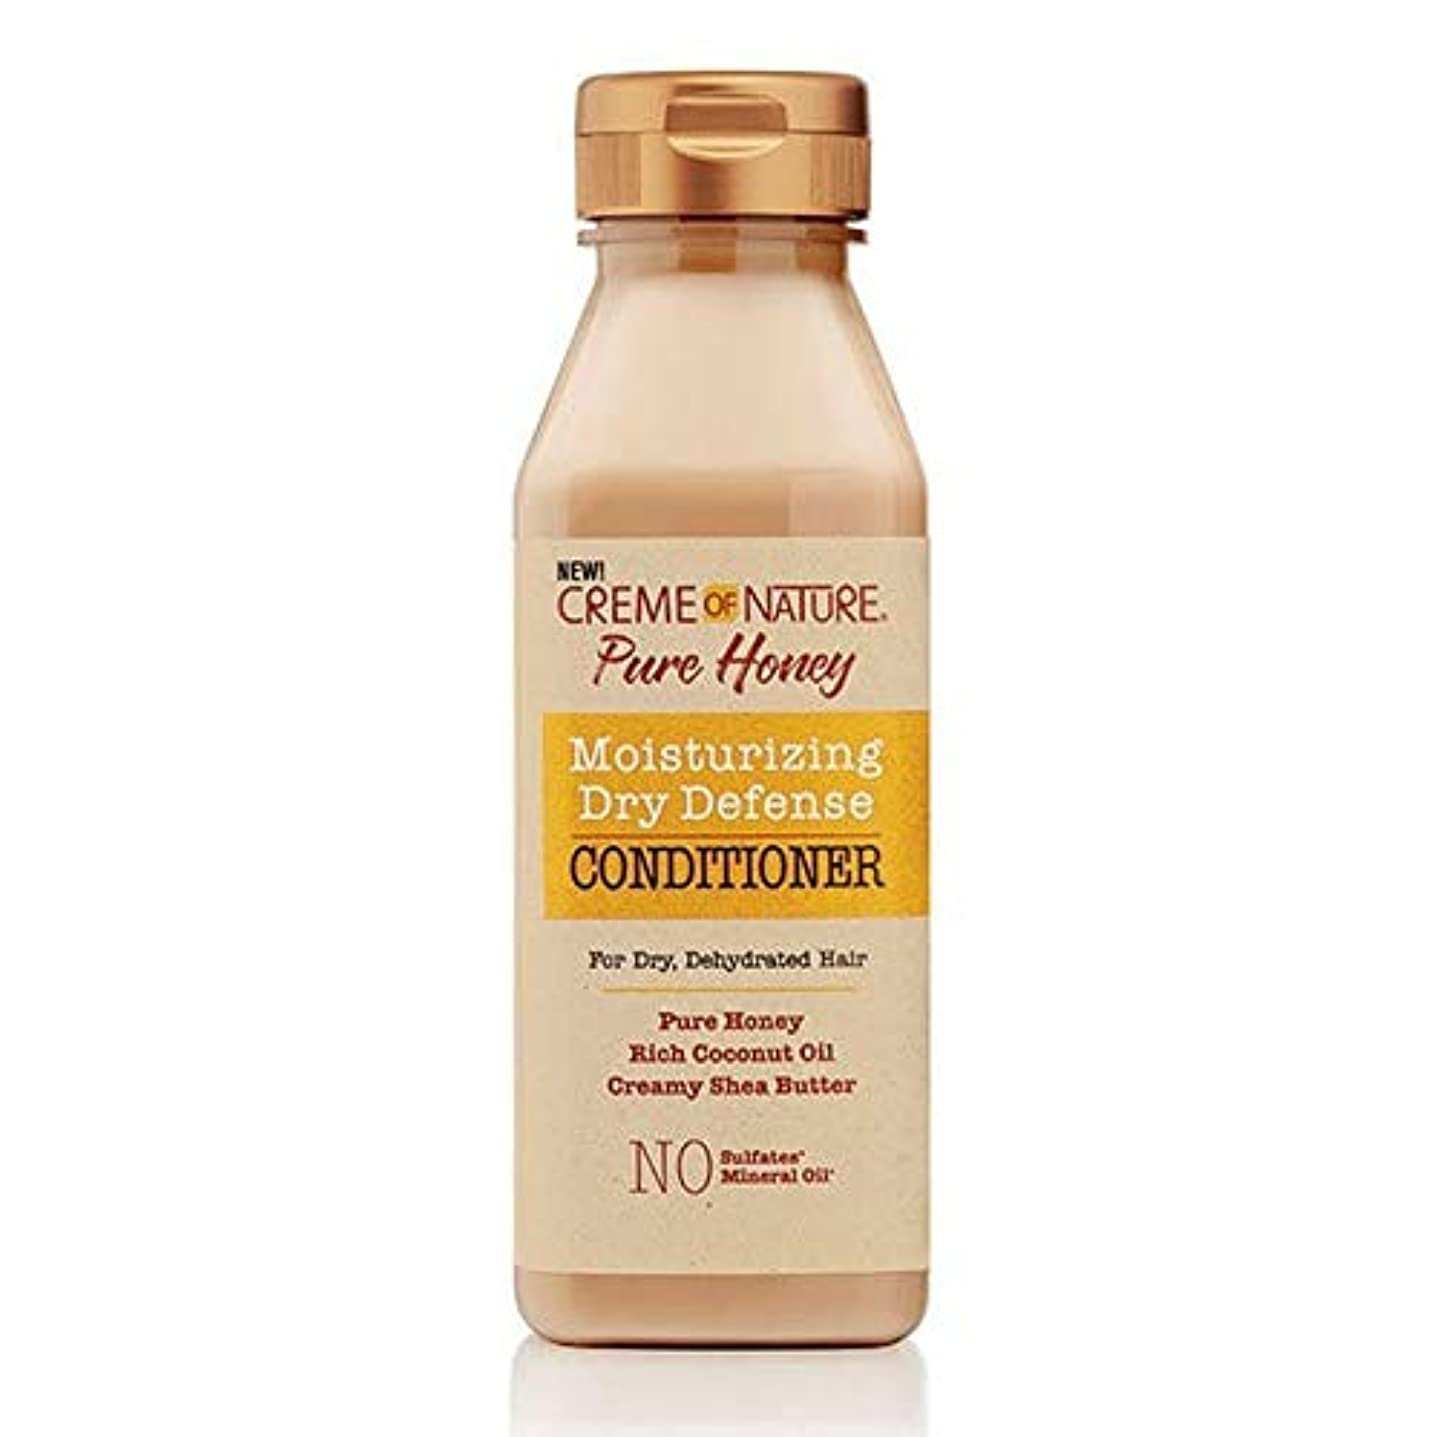 [Creme of Nature ] 自然の純粋蜂蜜ドライ防衛コンディショナー355ミリリットルのクリーム - Creme of Nature Pure Honey Dry Defence Conditioner 355ml...